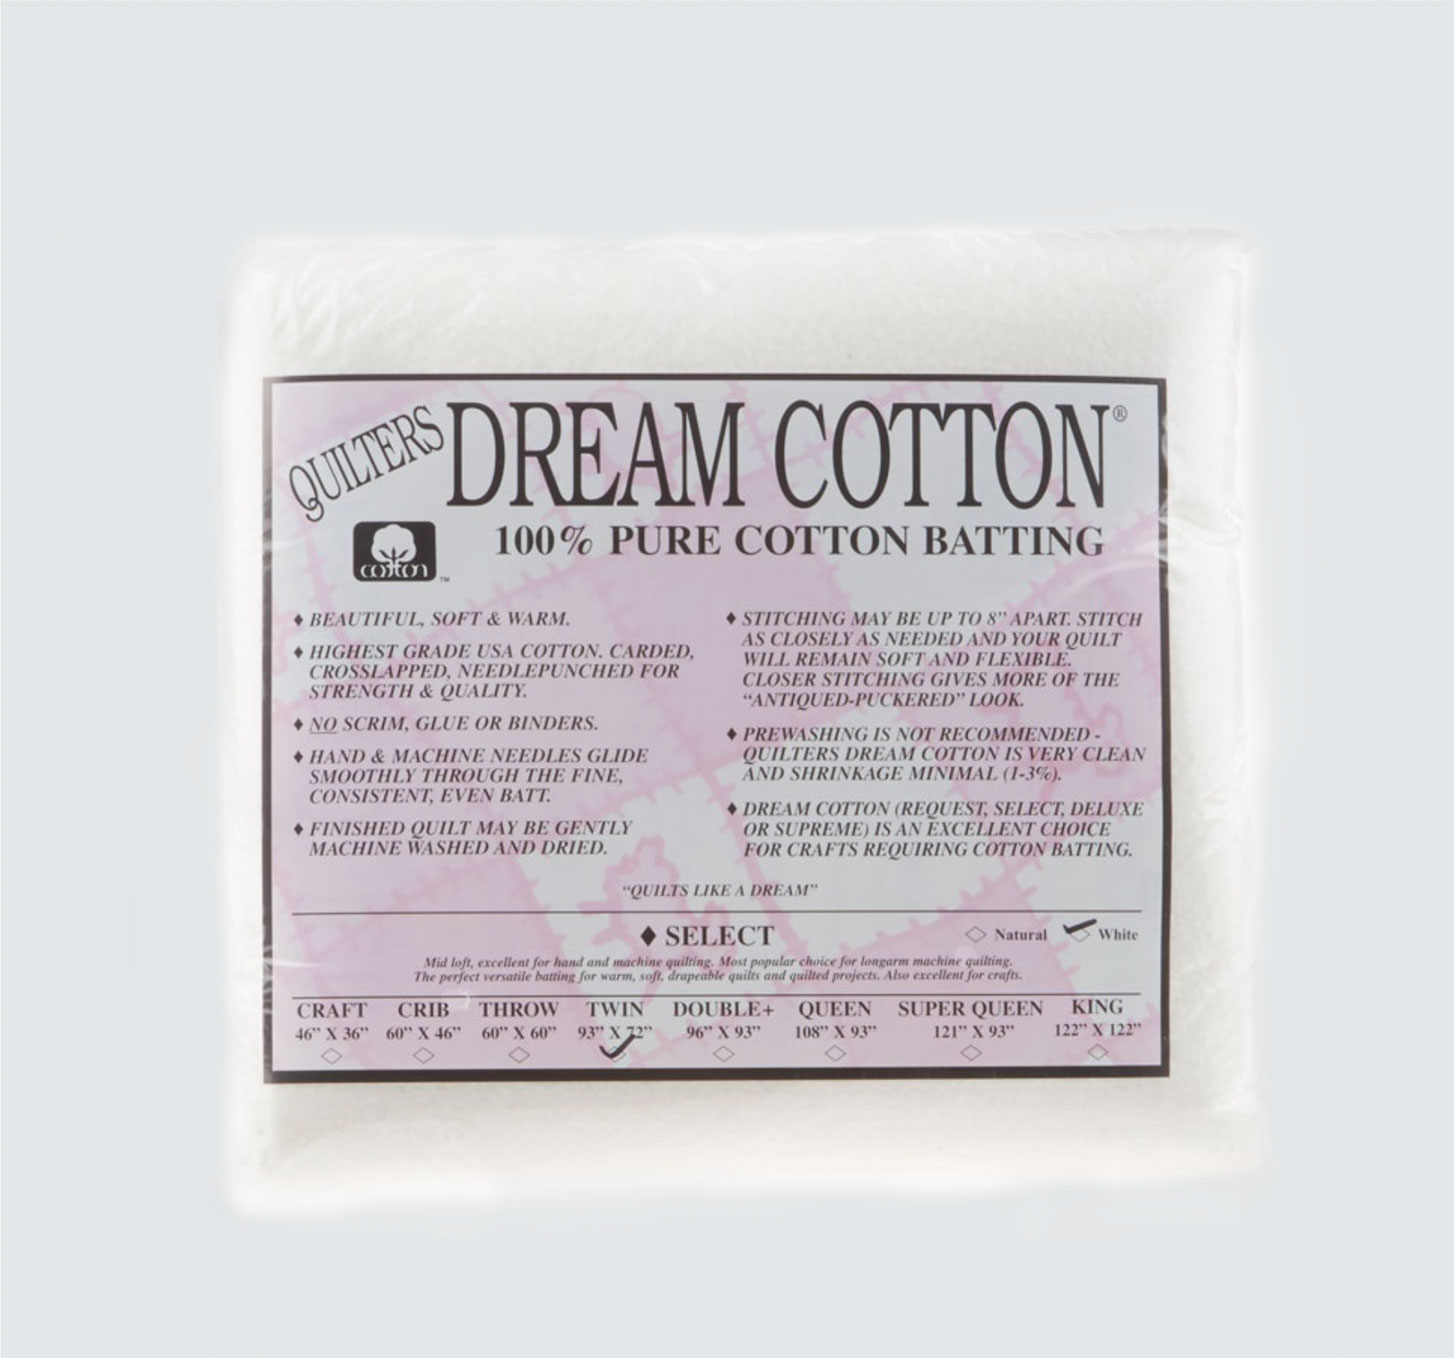 quilters pure cotton batting package